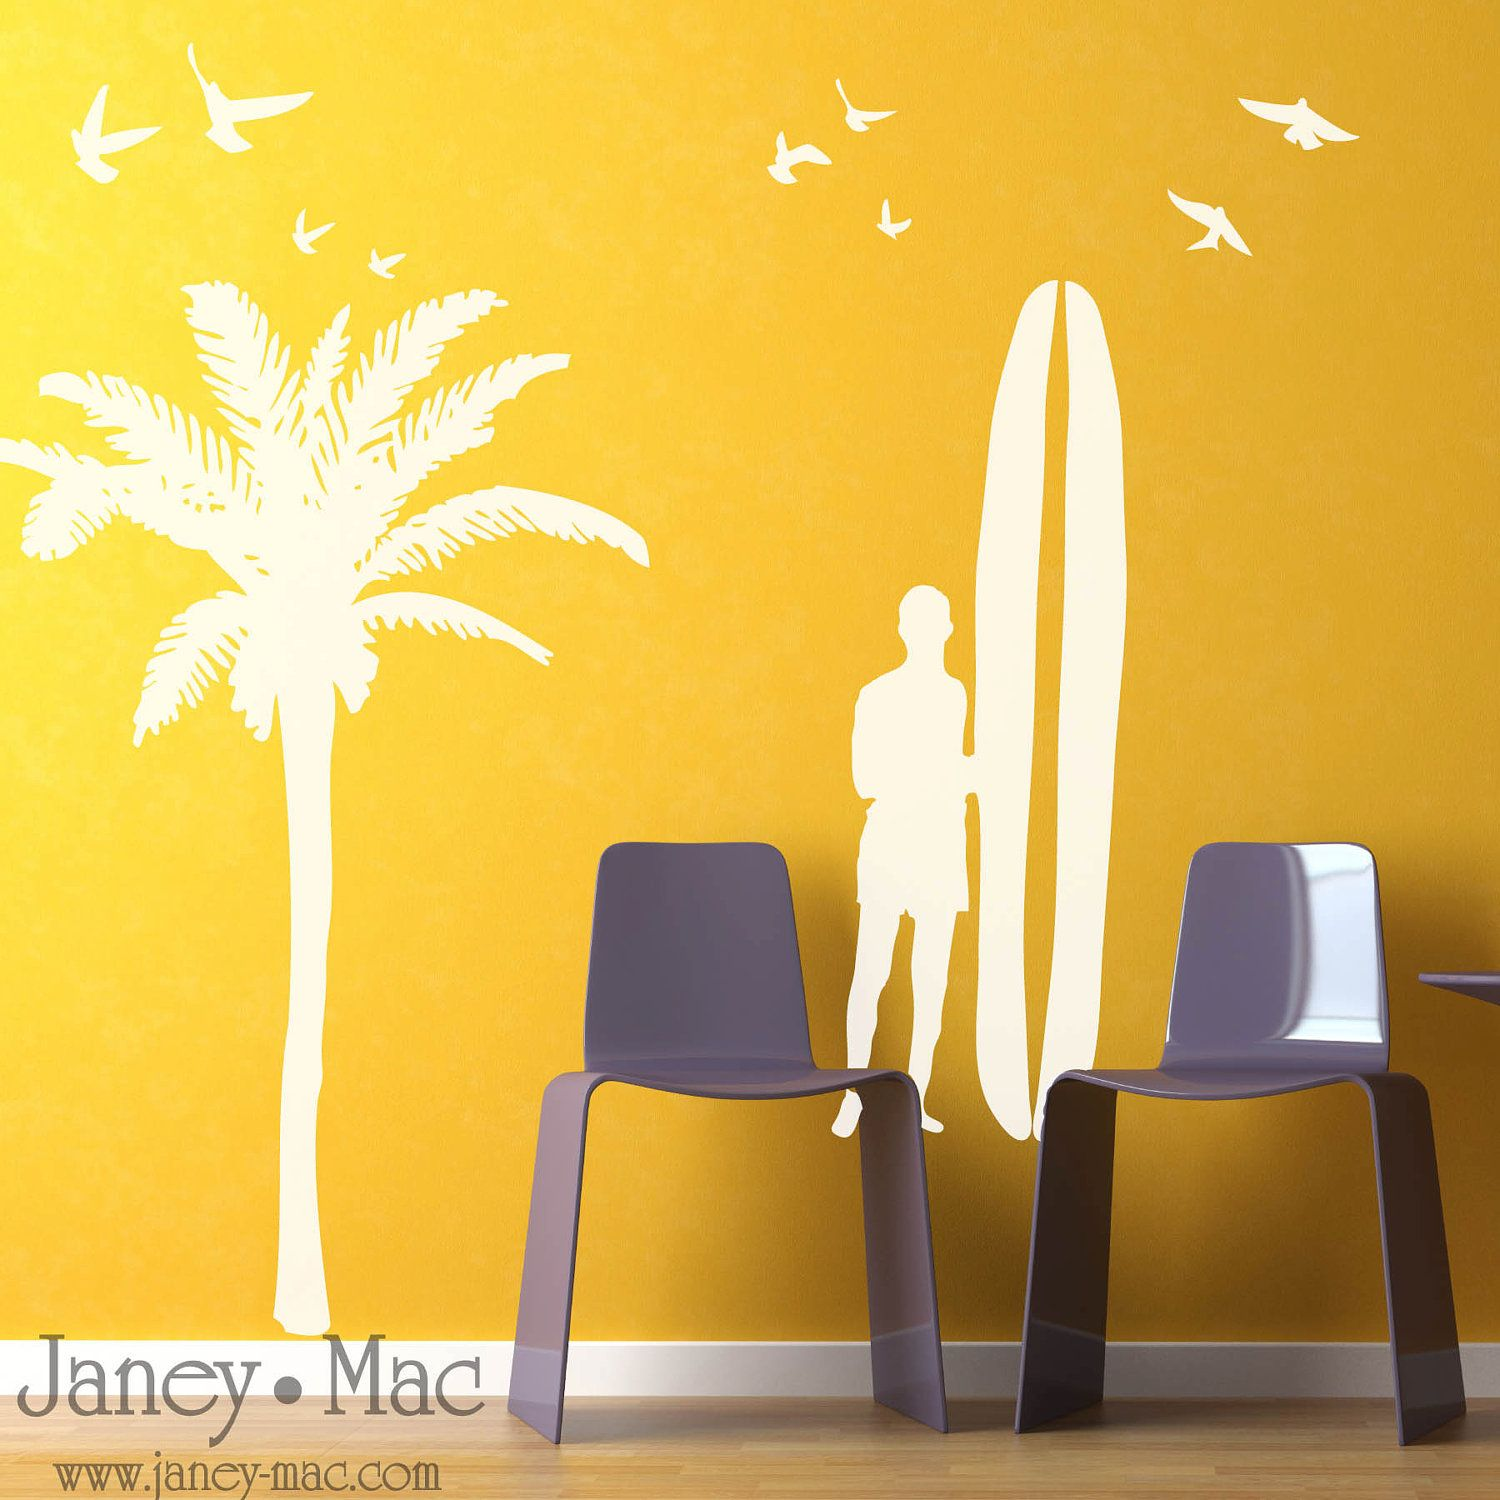 Surfer Wall Decal - Palm Tree with Birds and Surfer Wall Decal Set ...